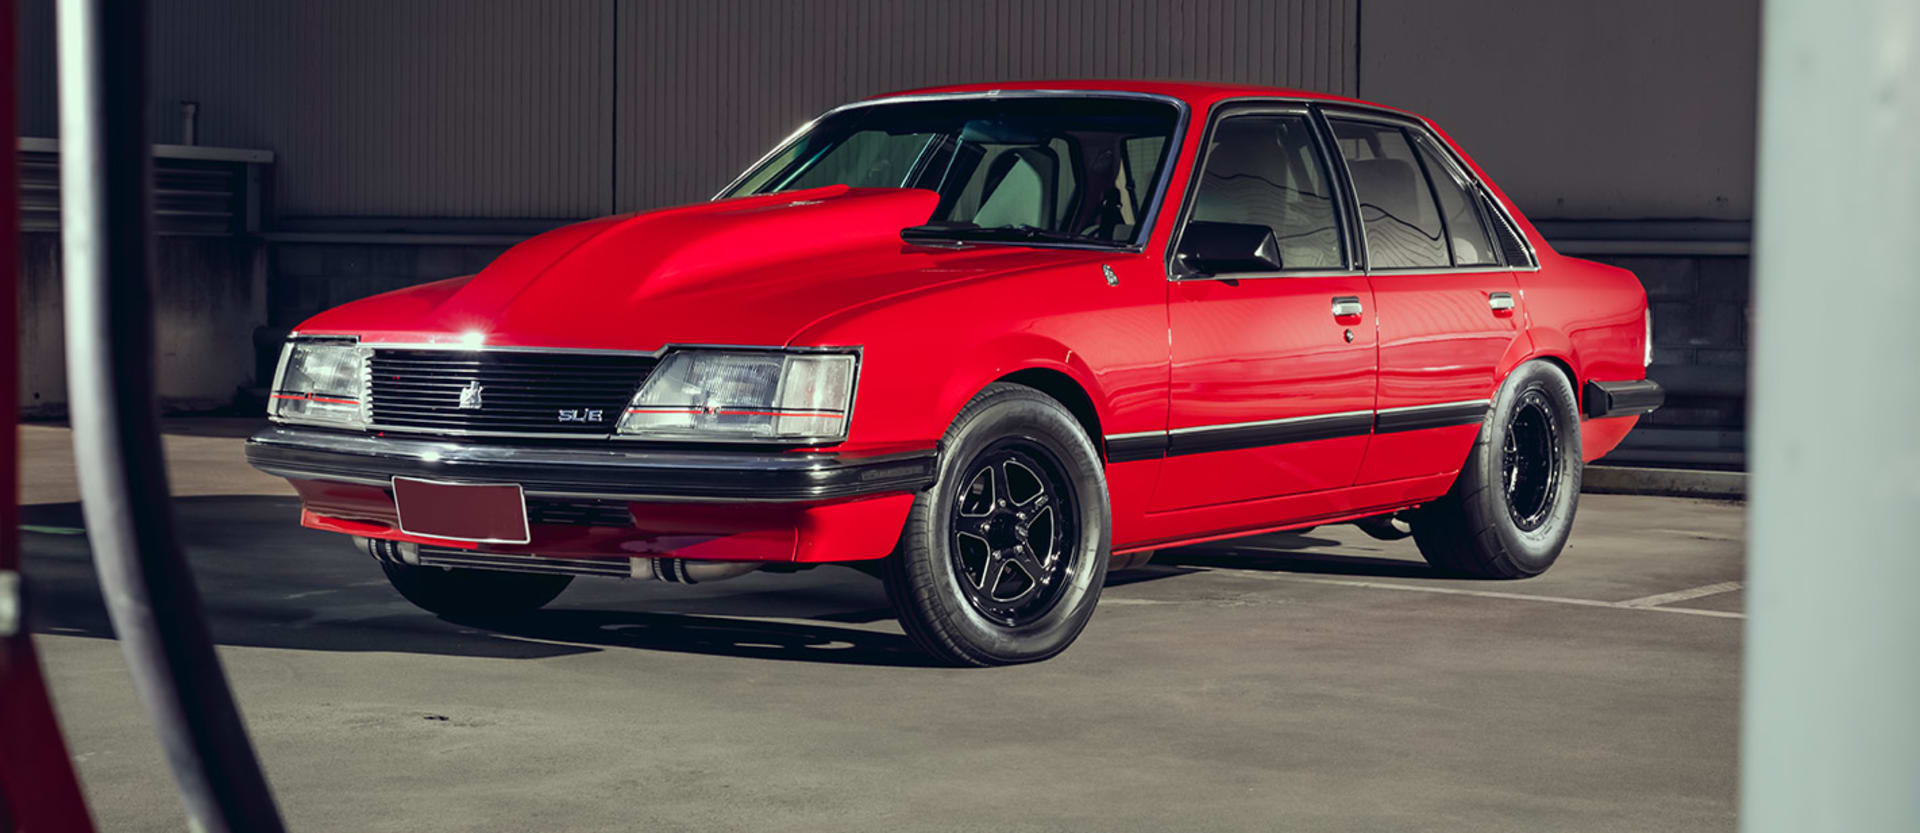 Holden Vh Commodore Front Angle Nw Jpg